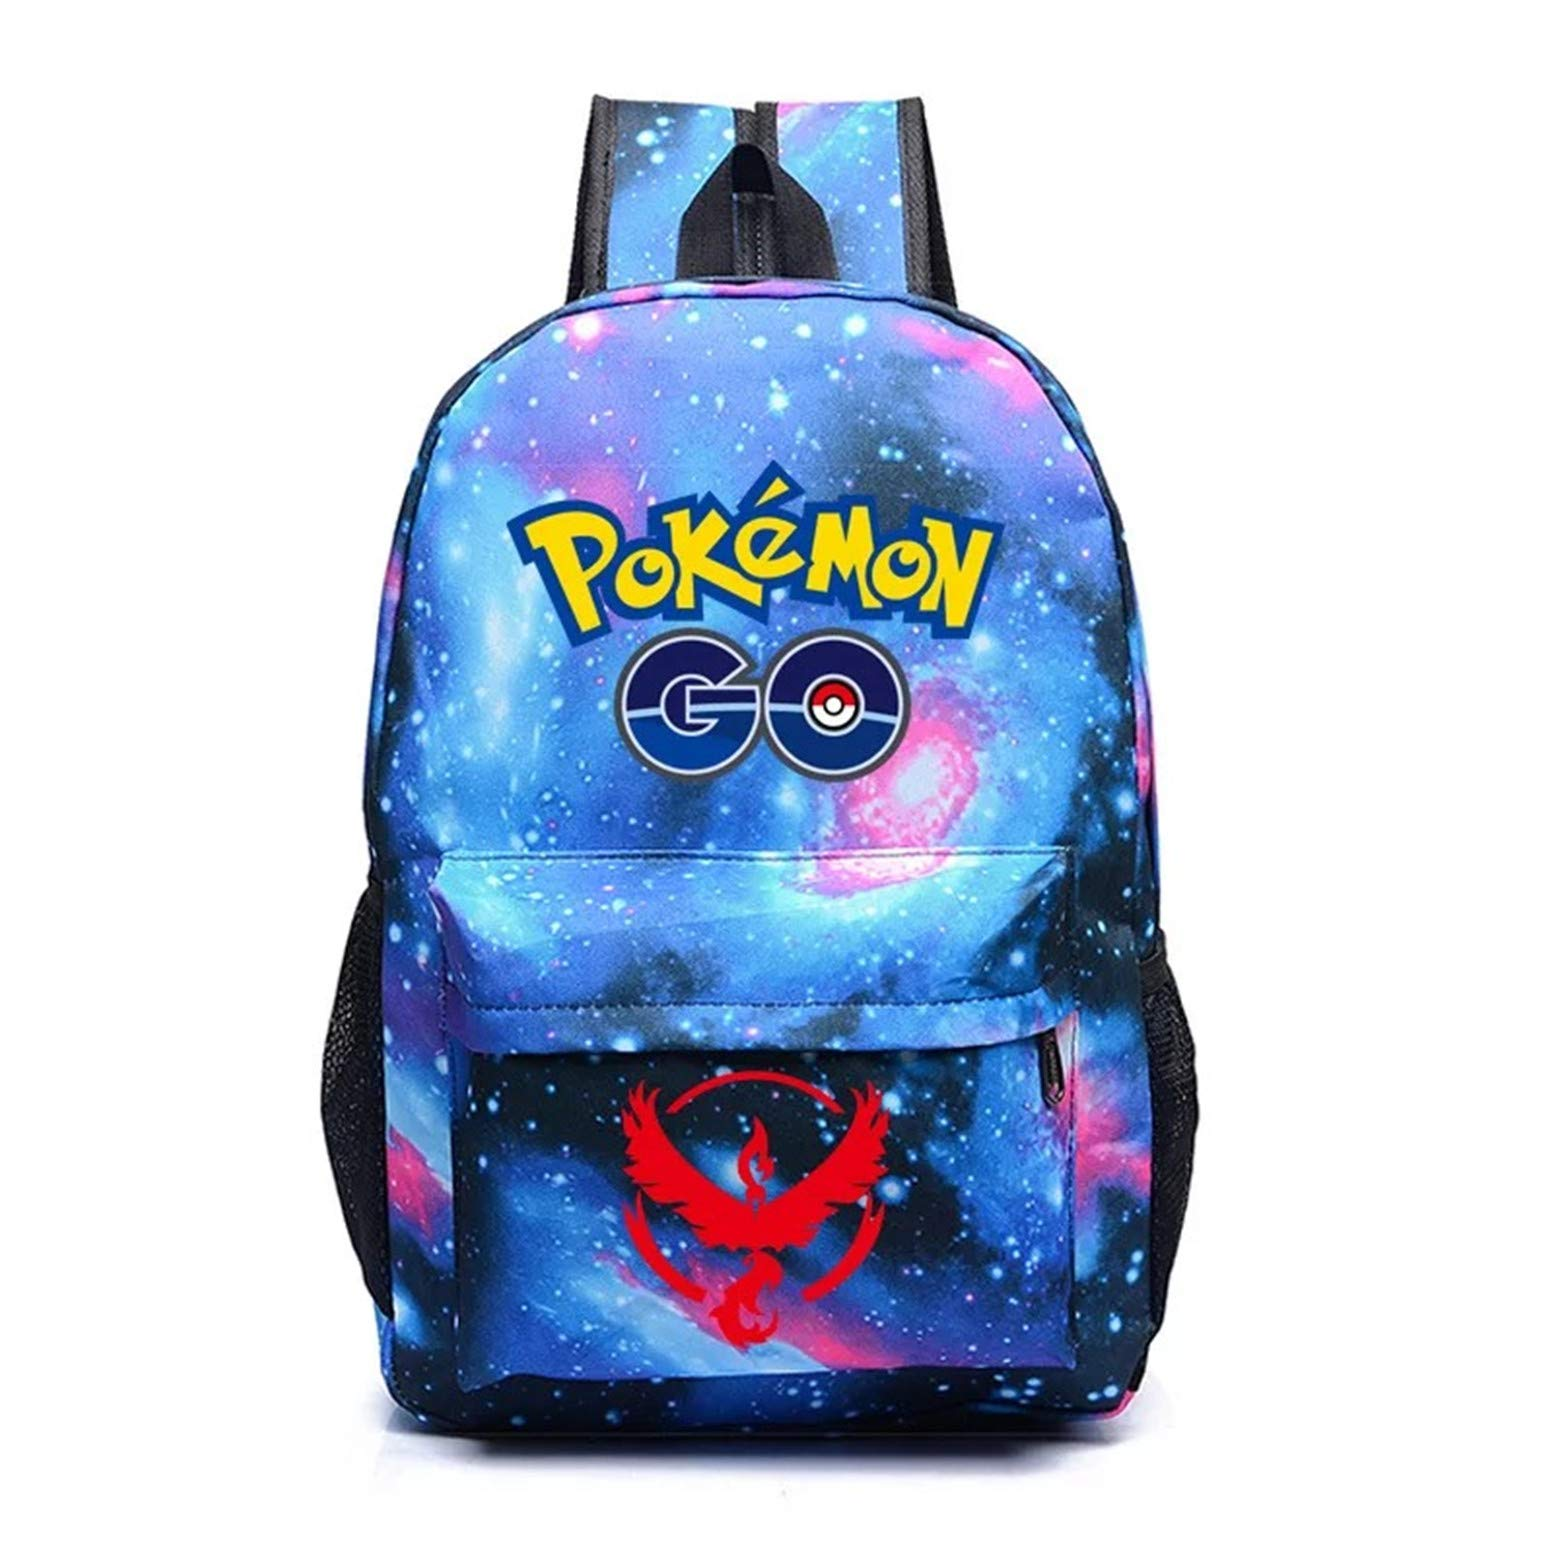 Kids Cartoon Pokémon Backpack School Rucksack Backpack for Boys Girls One Size by Ku-lee